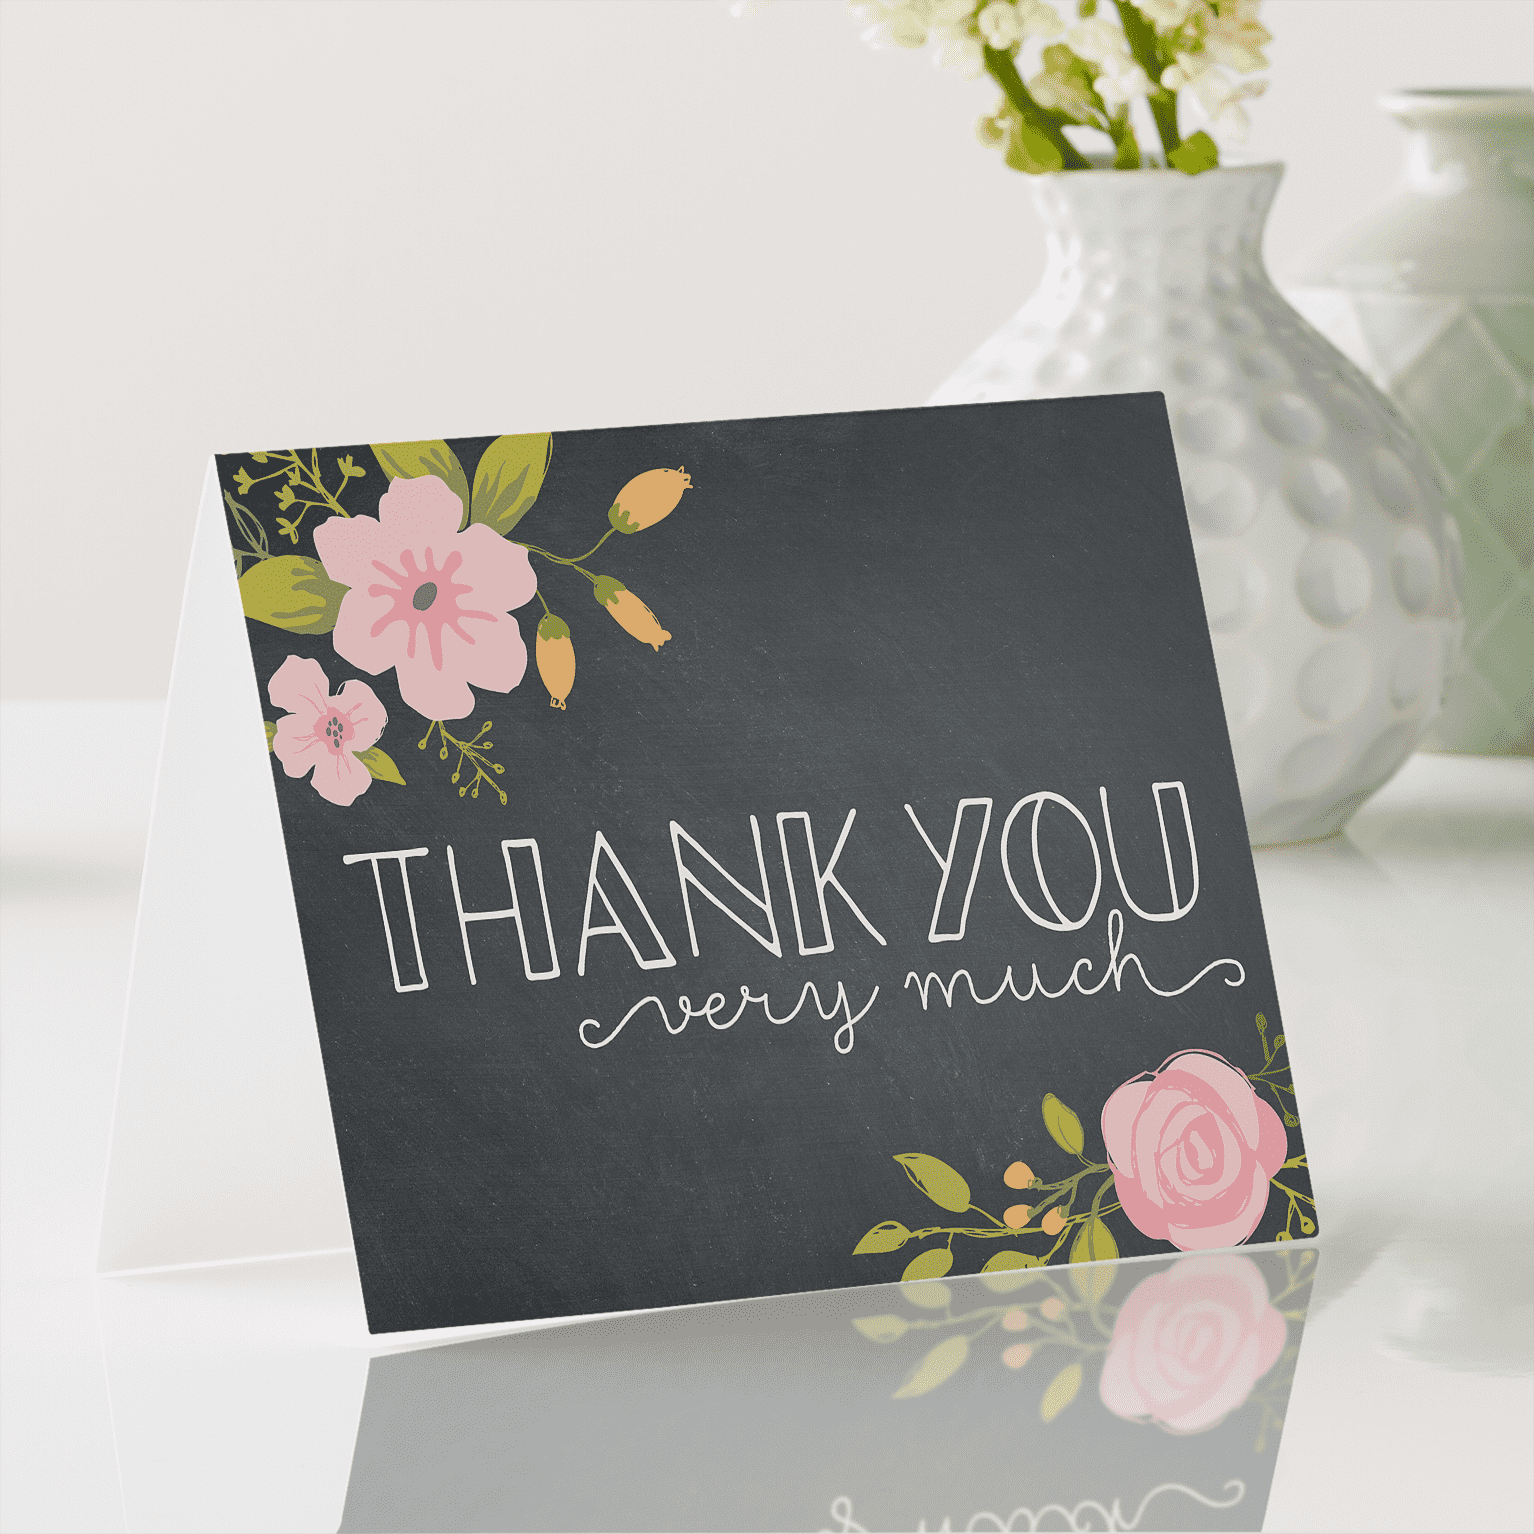 Wedding Color Schemes For Fall - thank you cards - Wedding Soiree Blog by K'Mich, Philadelphia's premier resource for wedding planning and inspiration